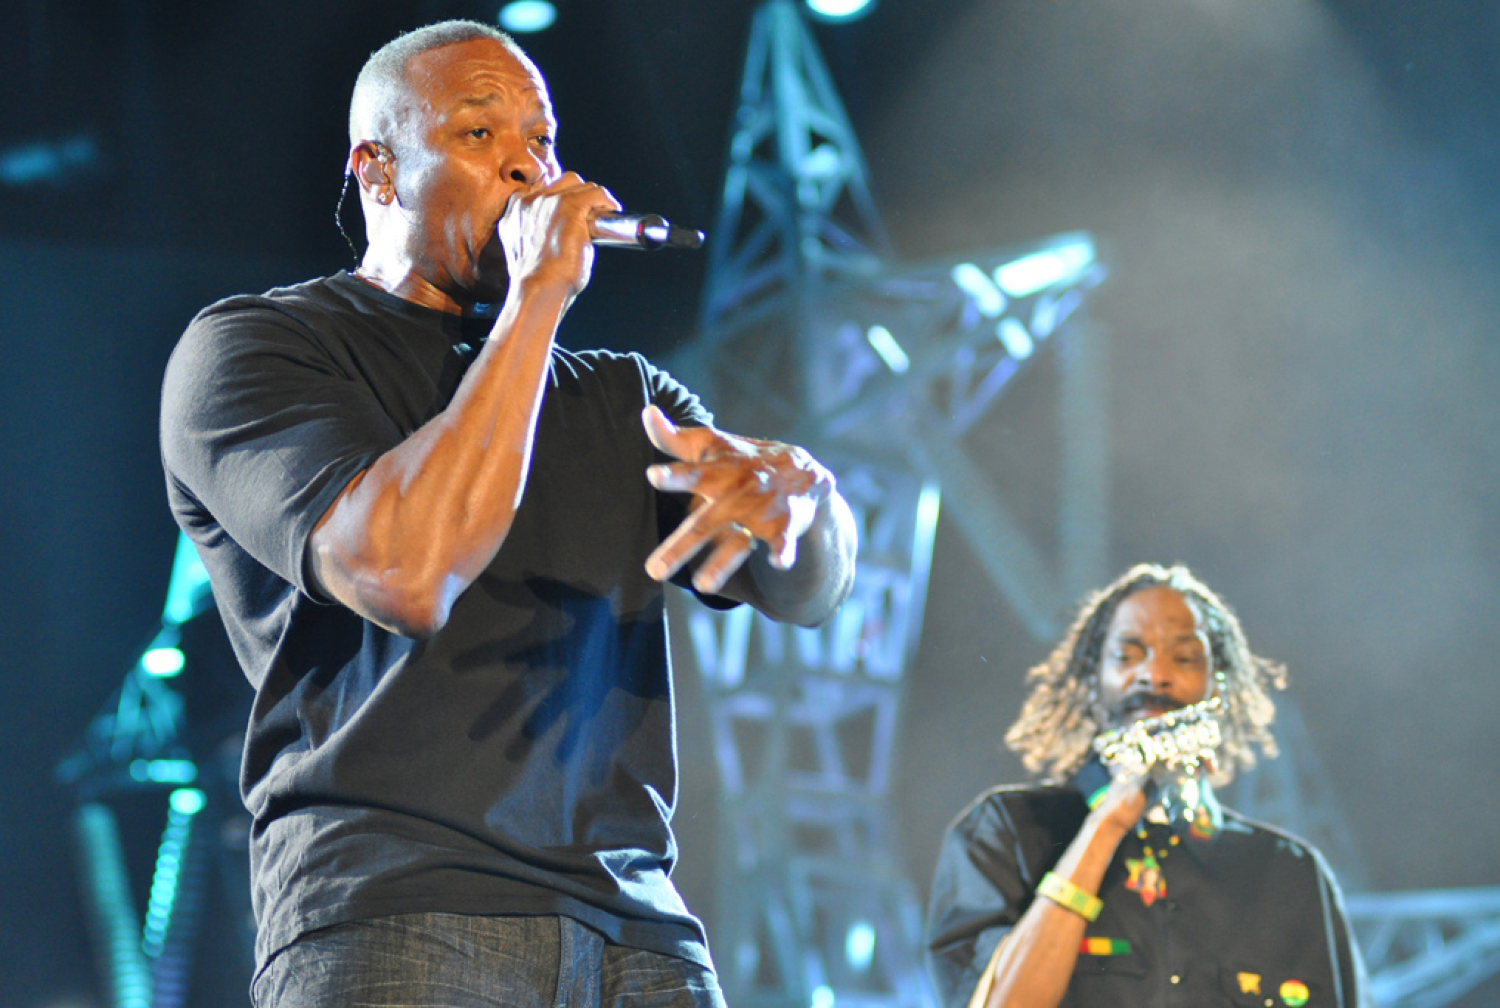 Four Arrested After American music mogul Dr Dre's home burgled while he's hospitalized